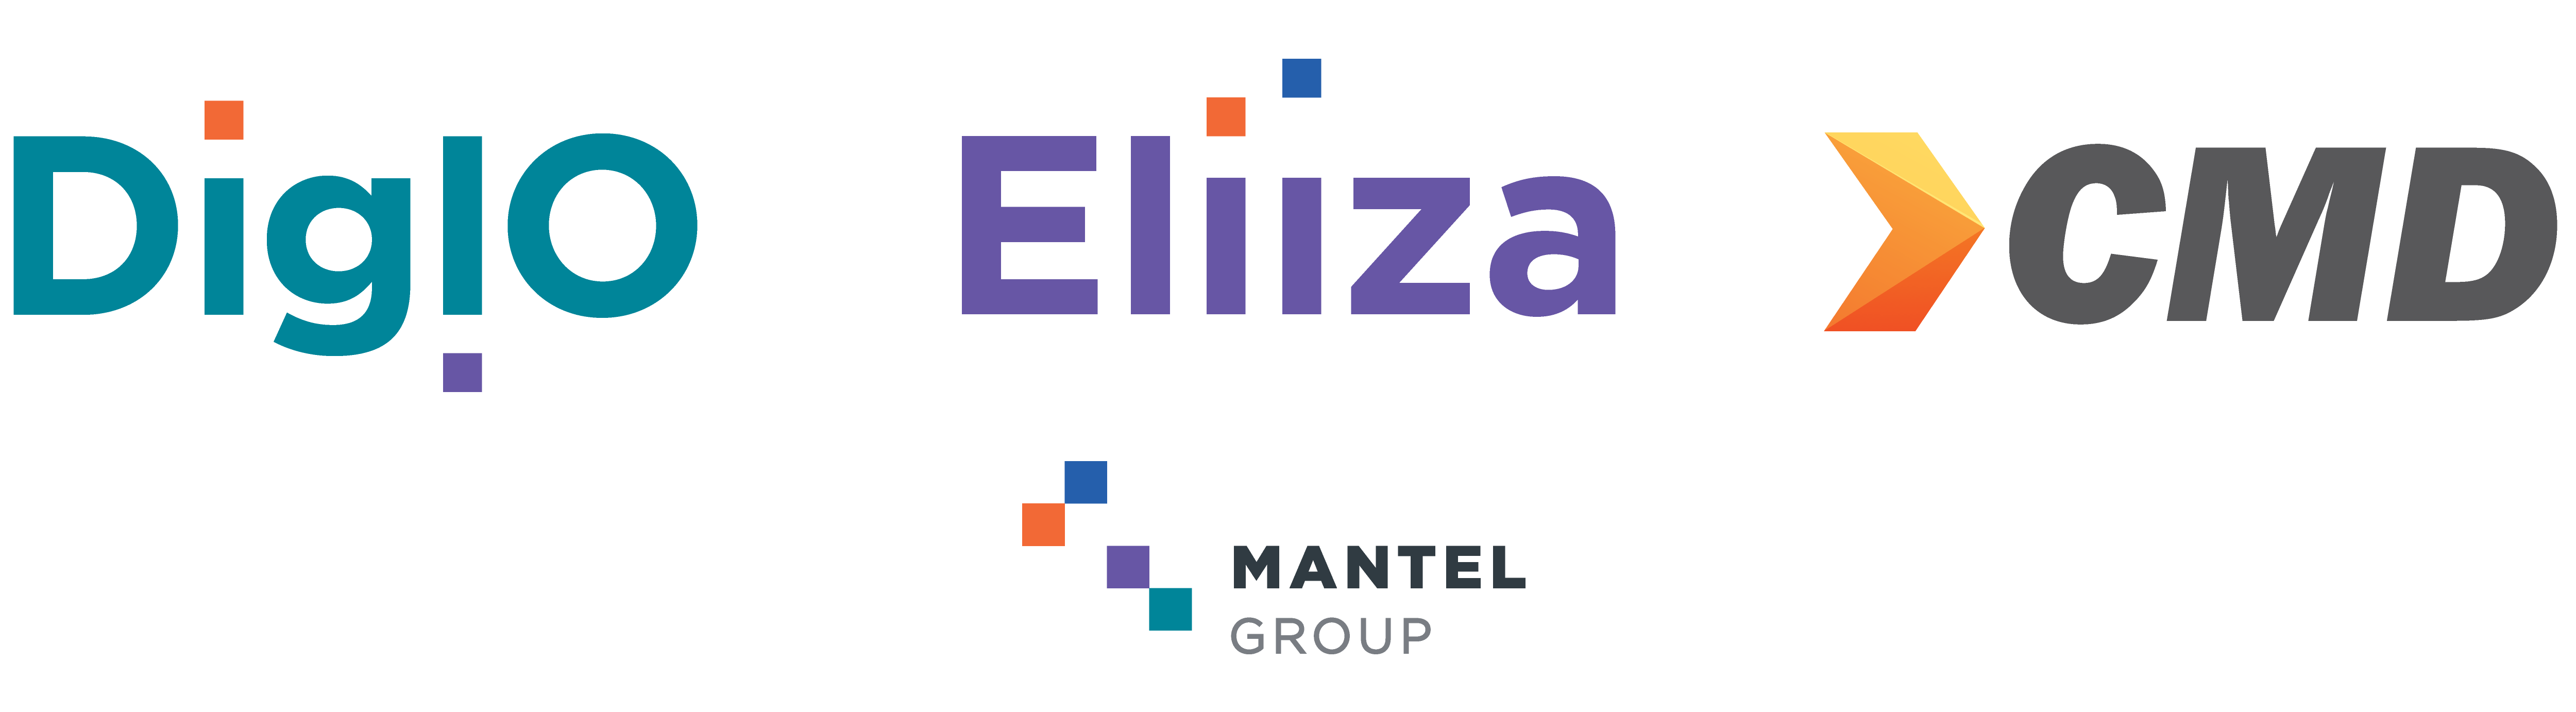 Mantel Group